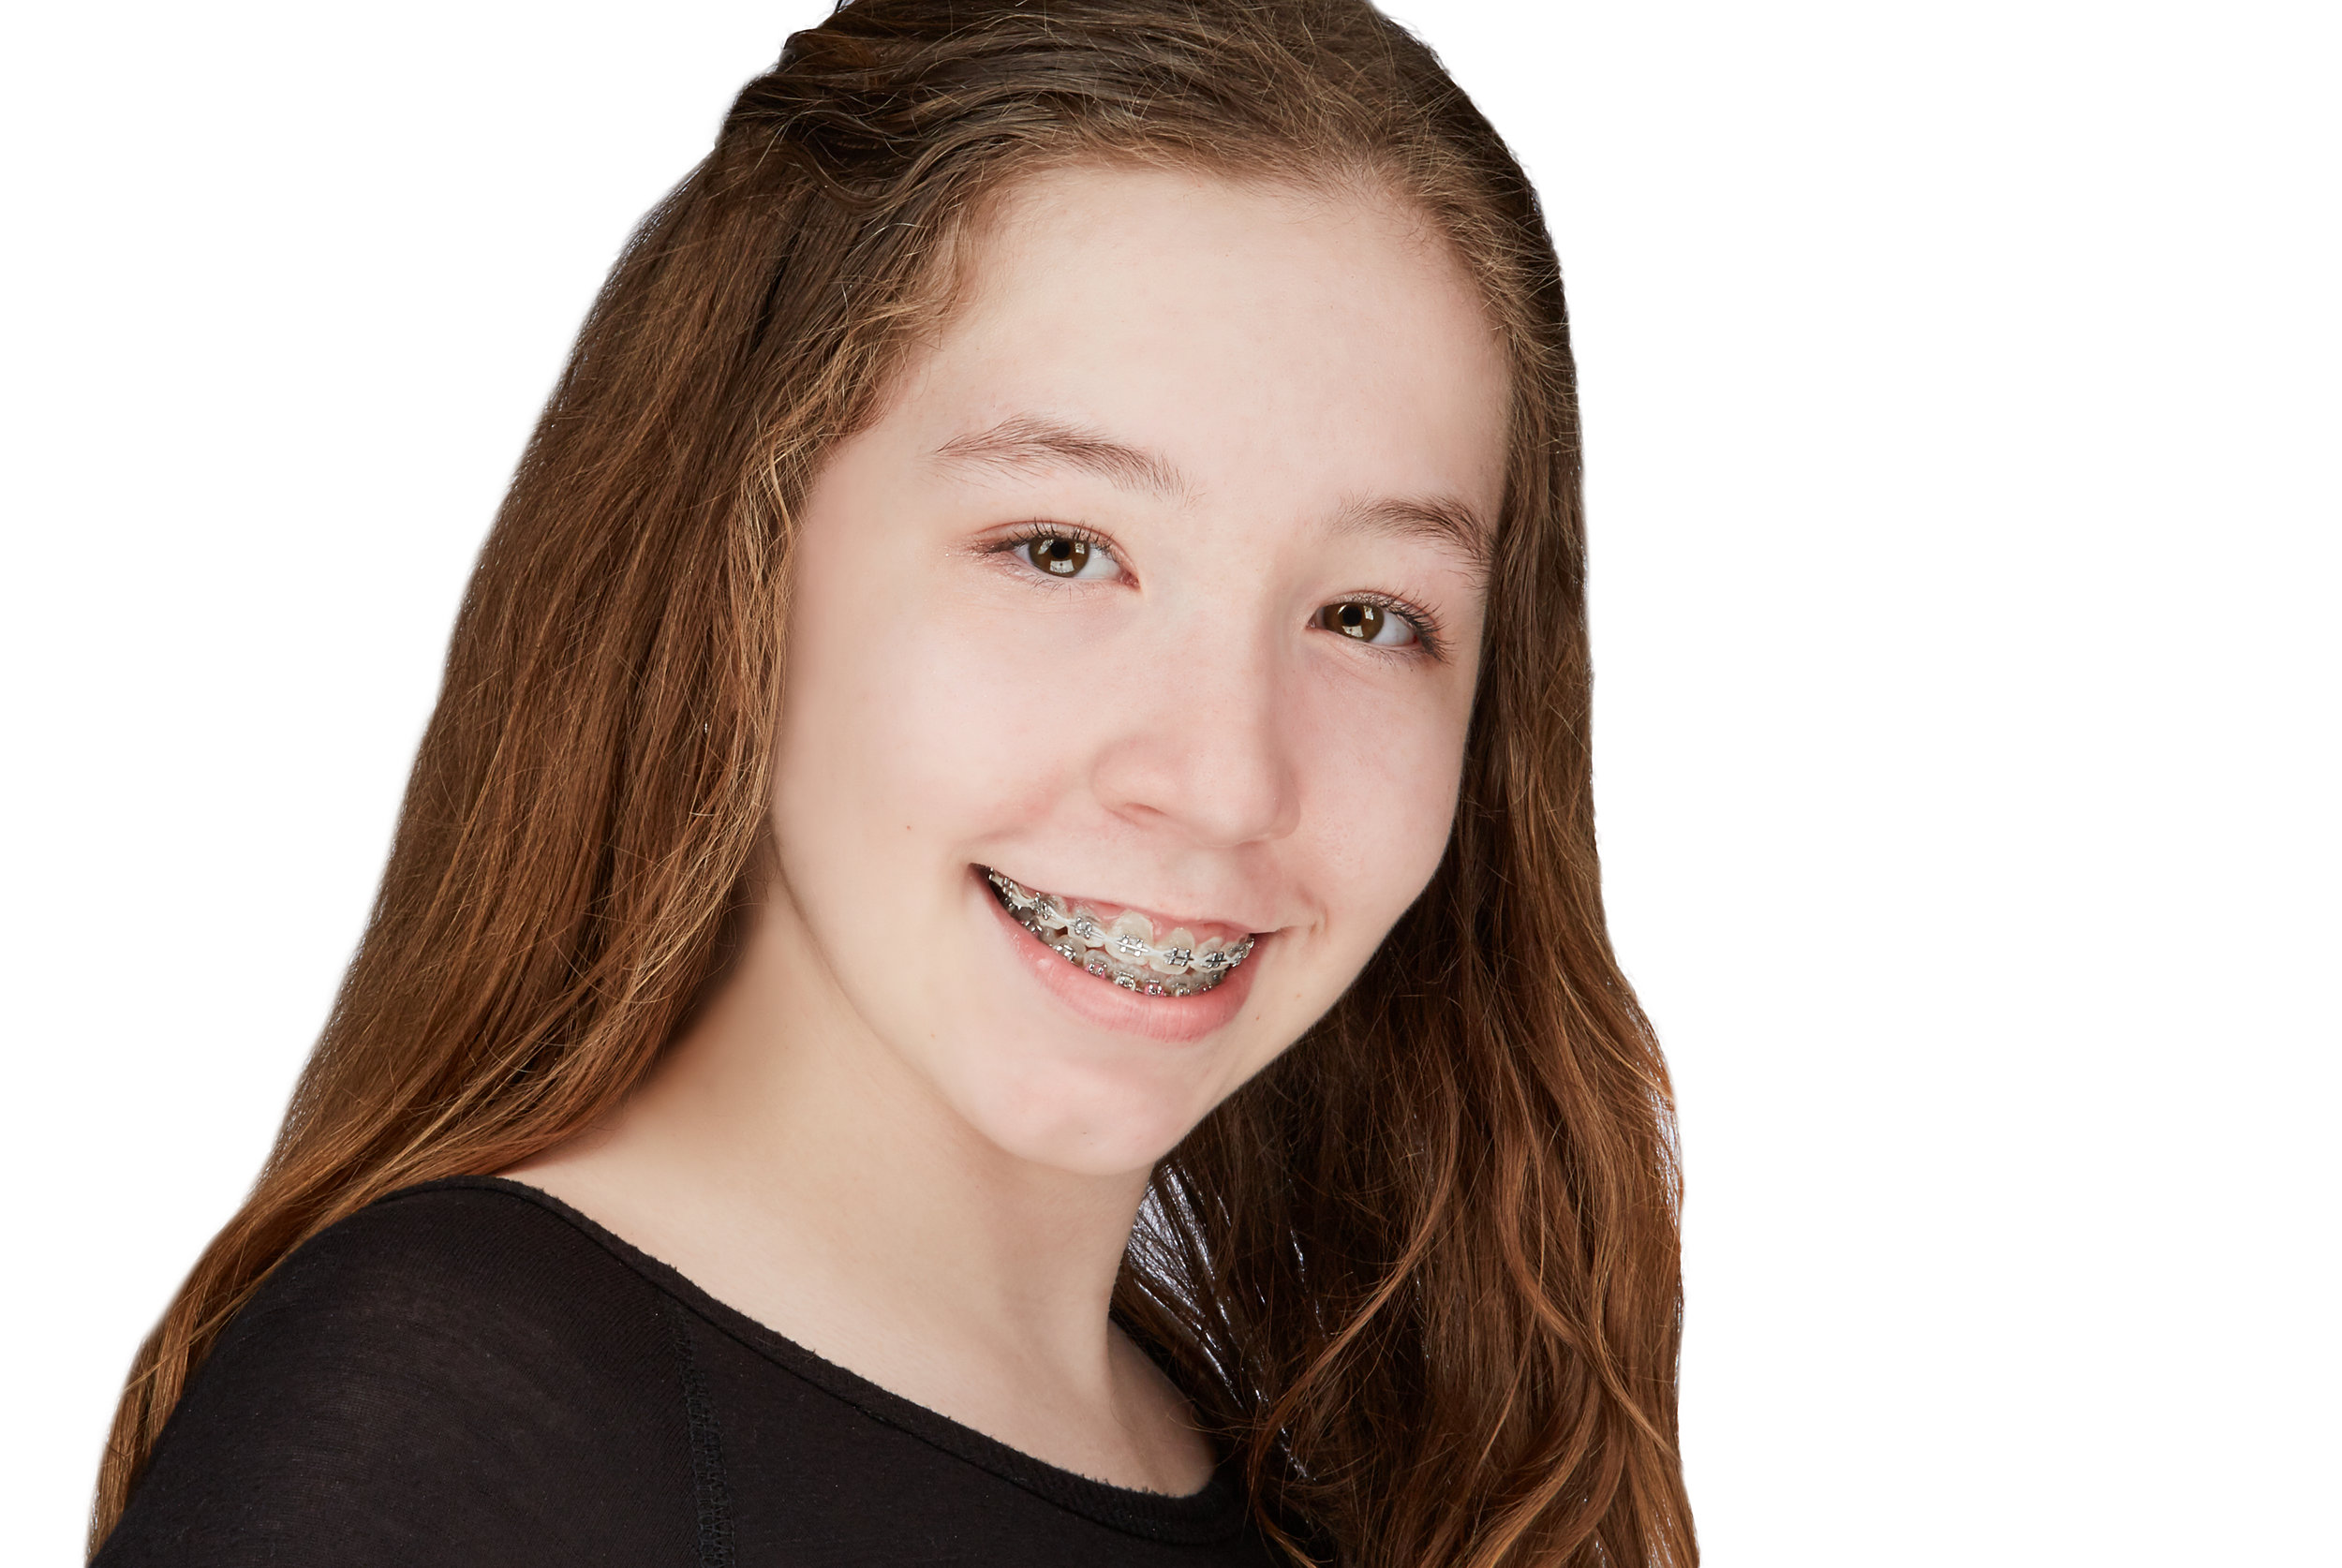 Bordentown Regional Middle School Drama Club Headshot for their production of Fame.